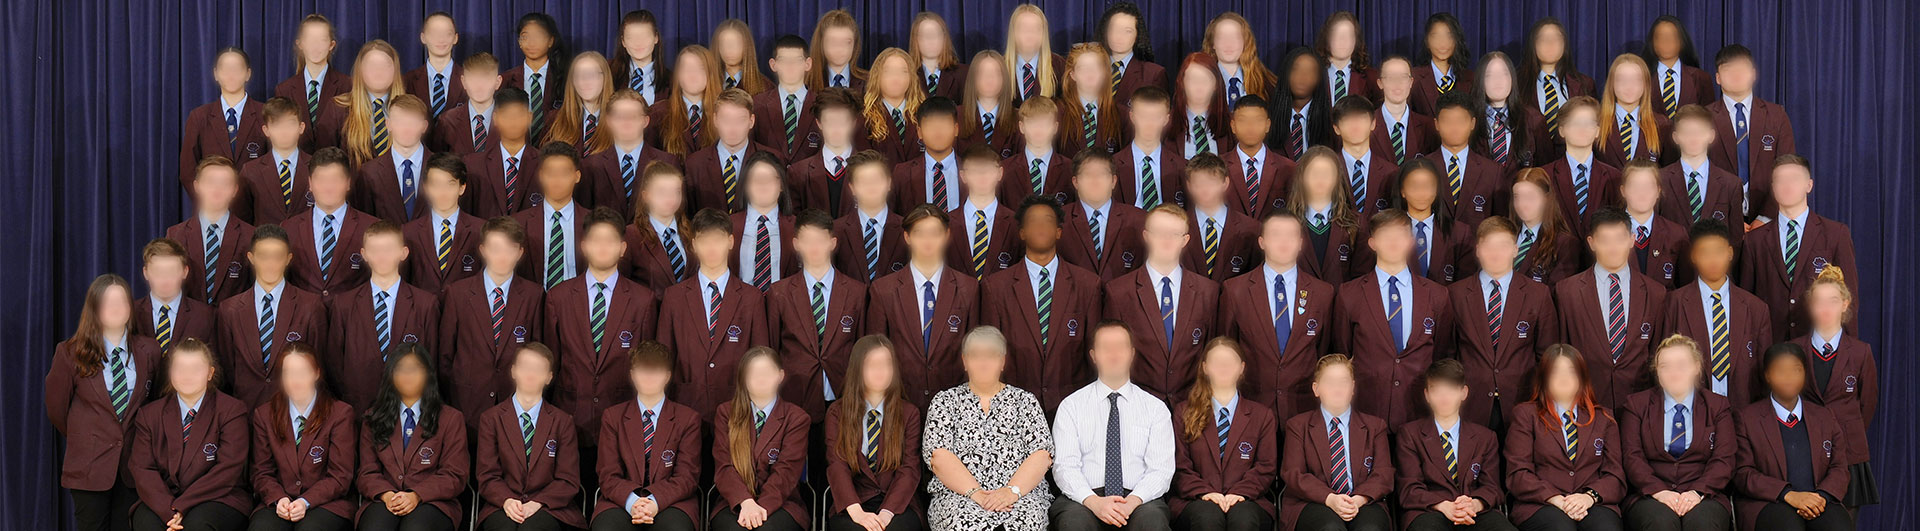 Senior School Photography Banner